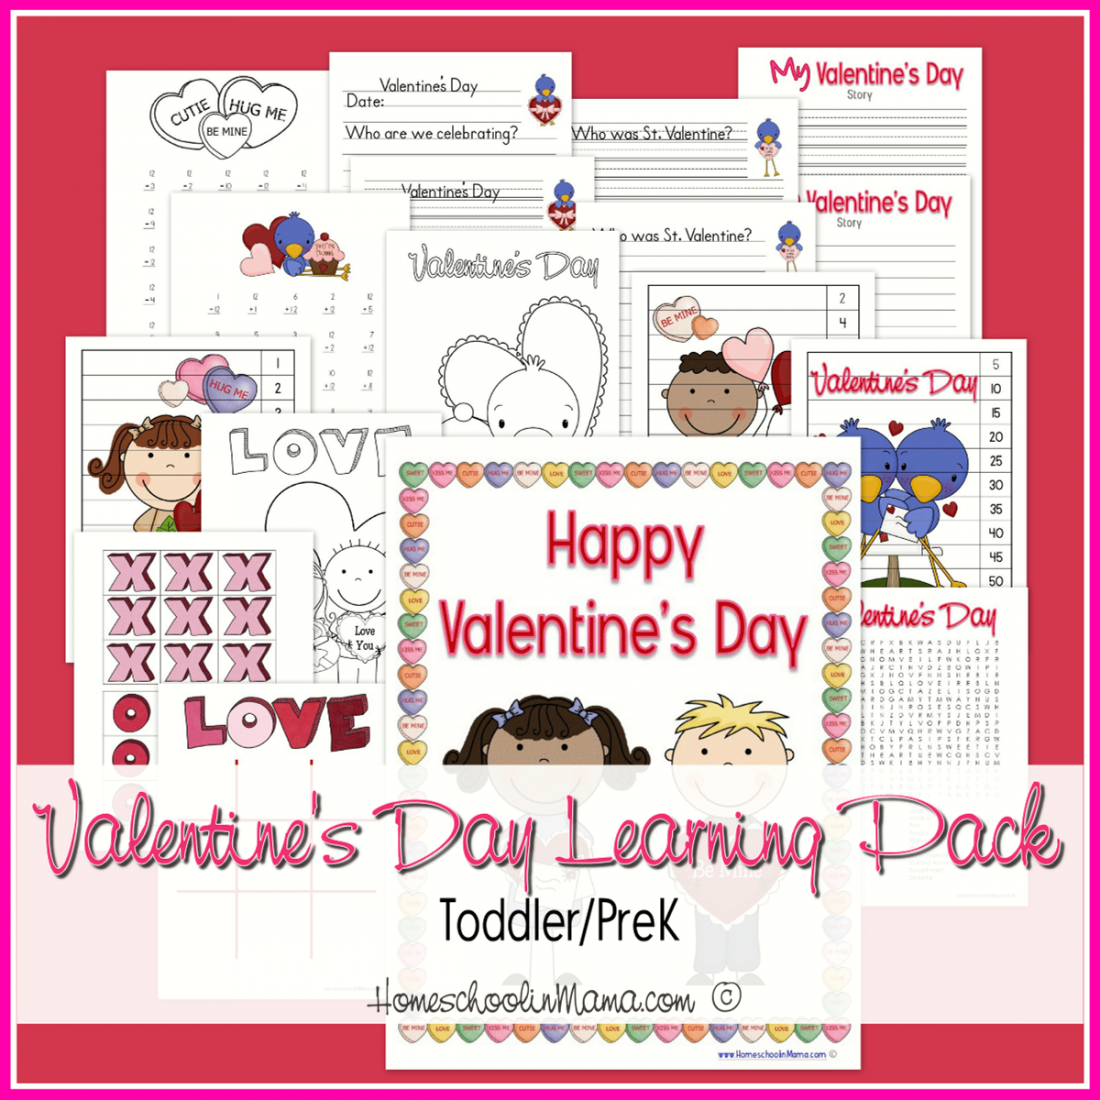 Valentines Day K-3 Learning Pack from HomeschoolinMama.com